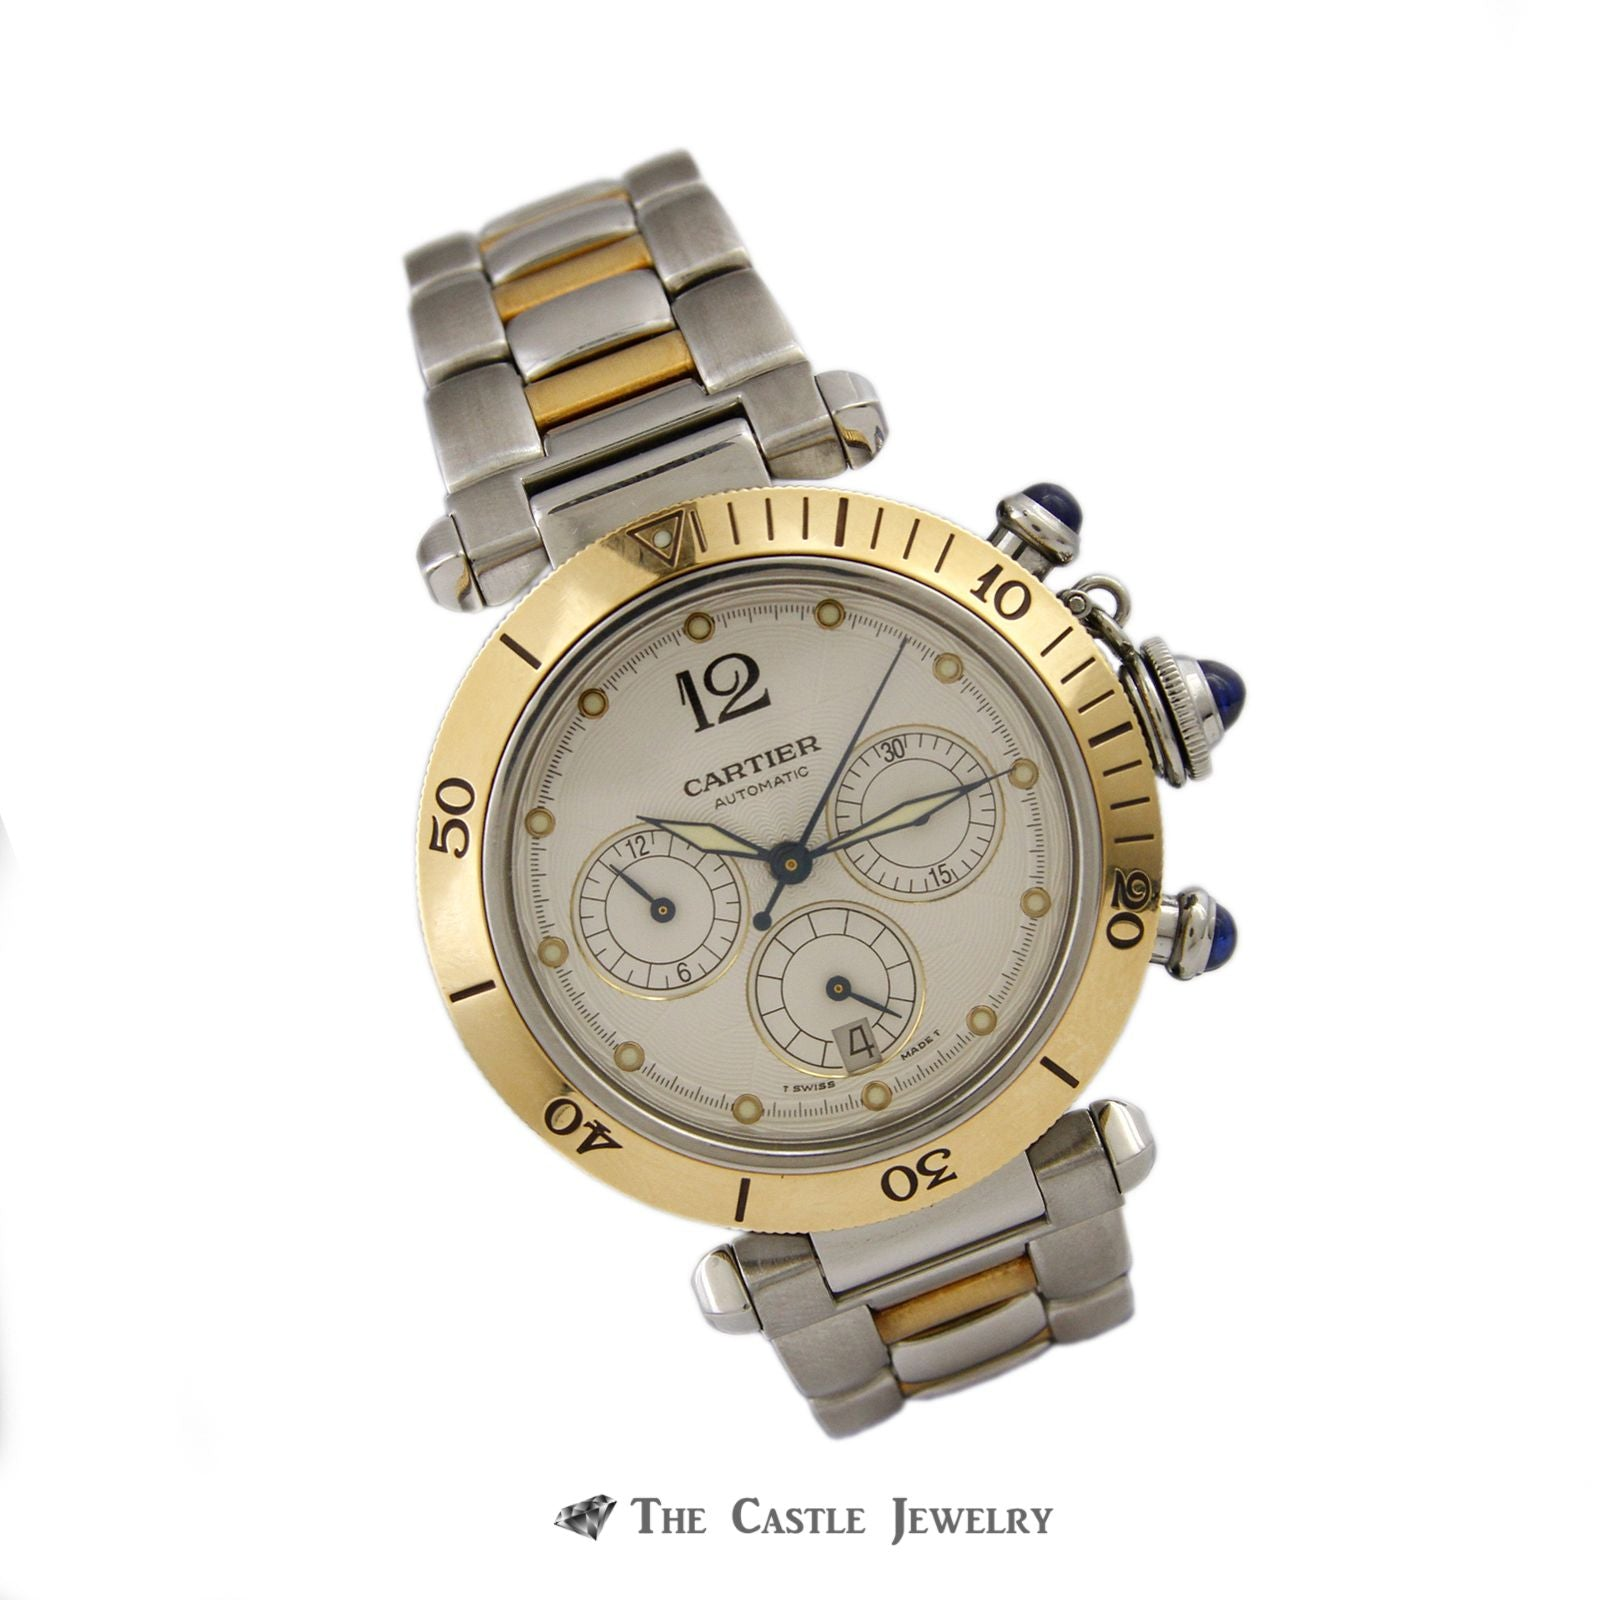 Cartier Pasha de Cartier Watch 18K & Steel 38mm Chronograph Ref. 2113-2